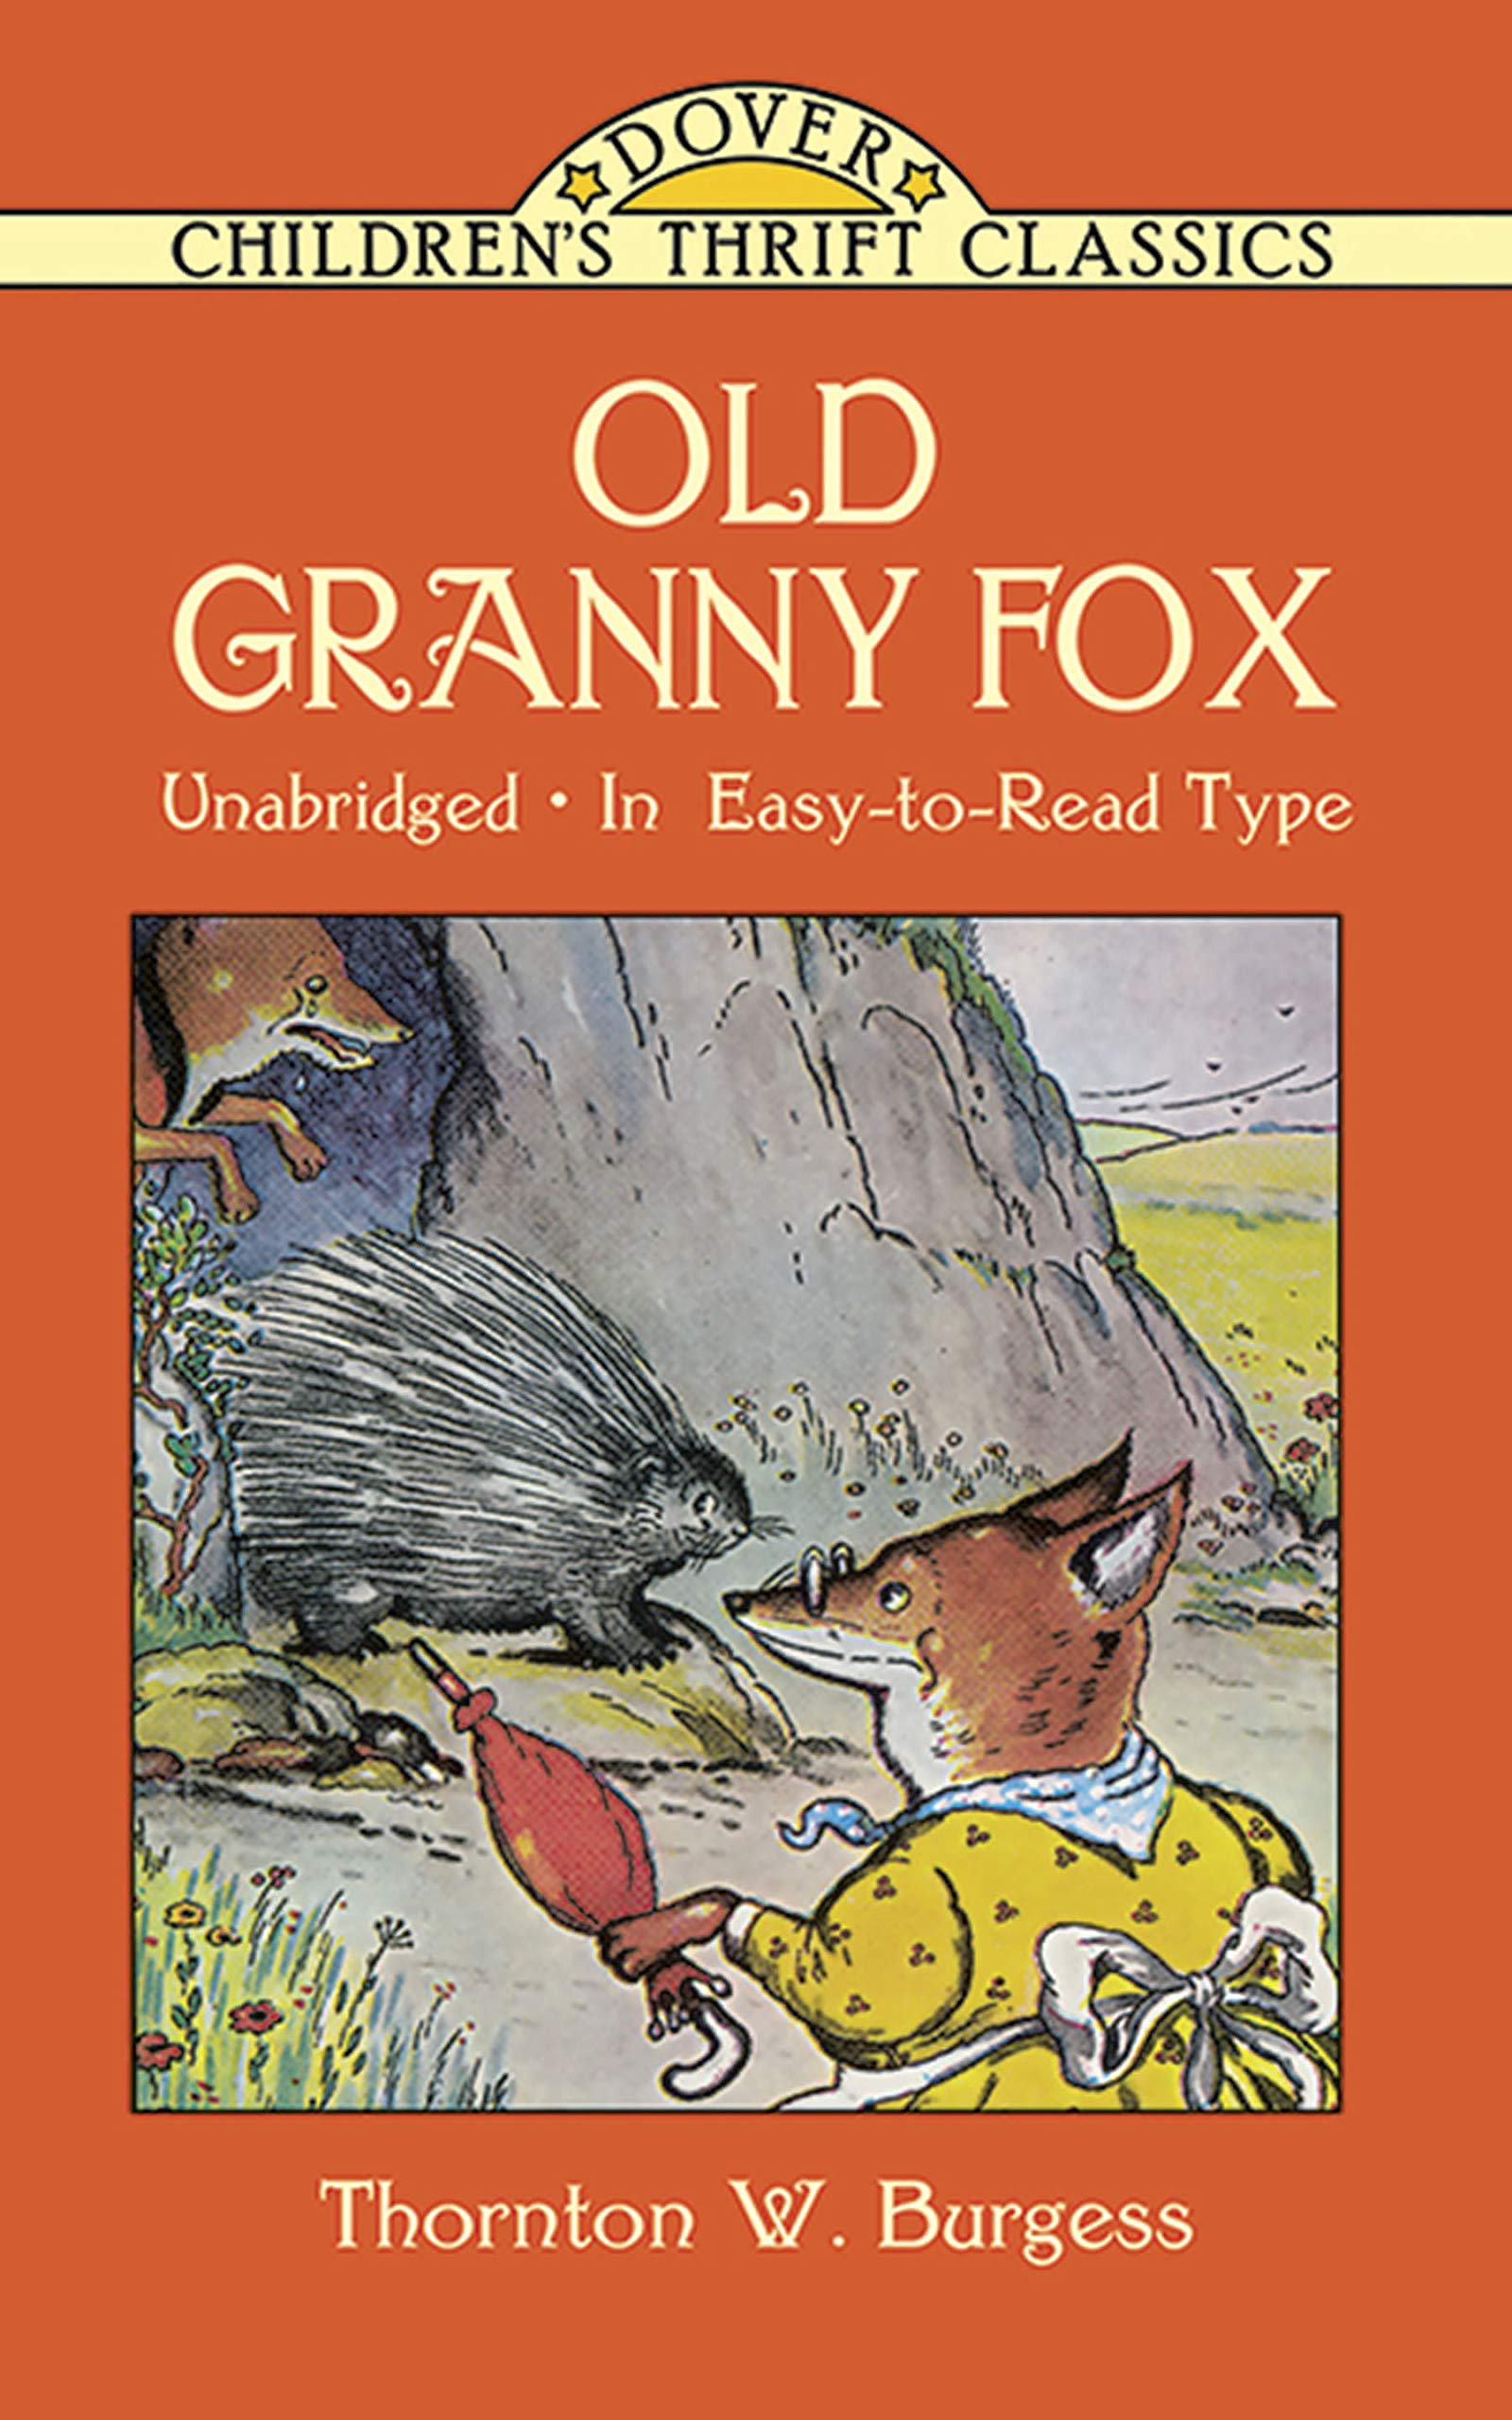 Old Granny Fox (Dover Children's Thrift Classics) by Dover Publications (Image #1)